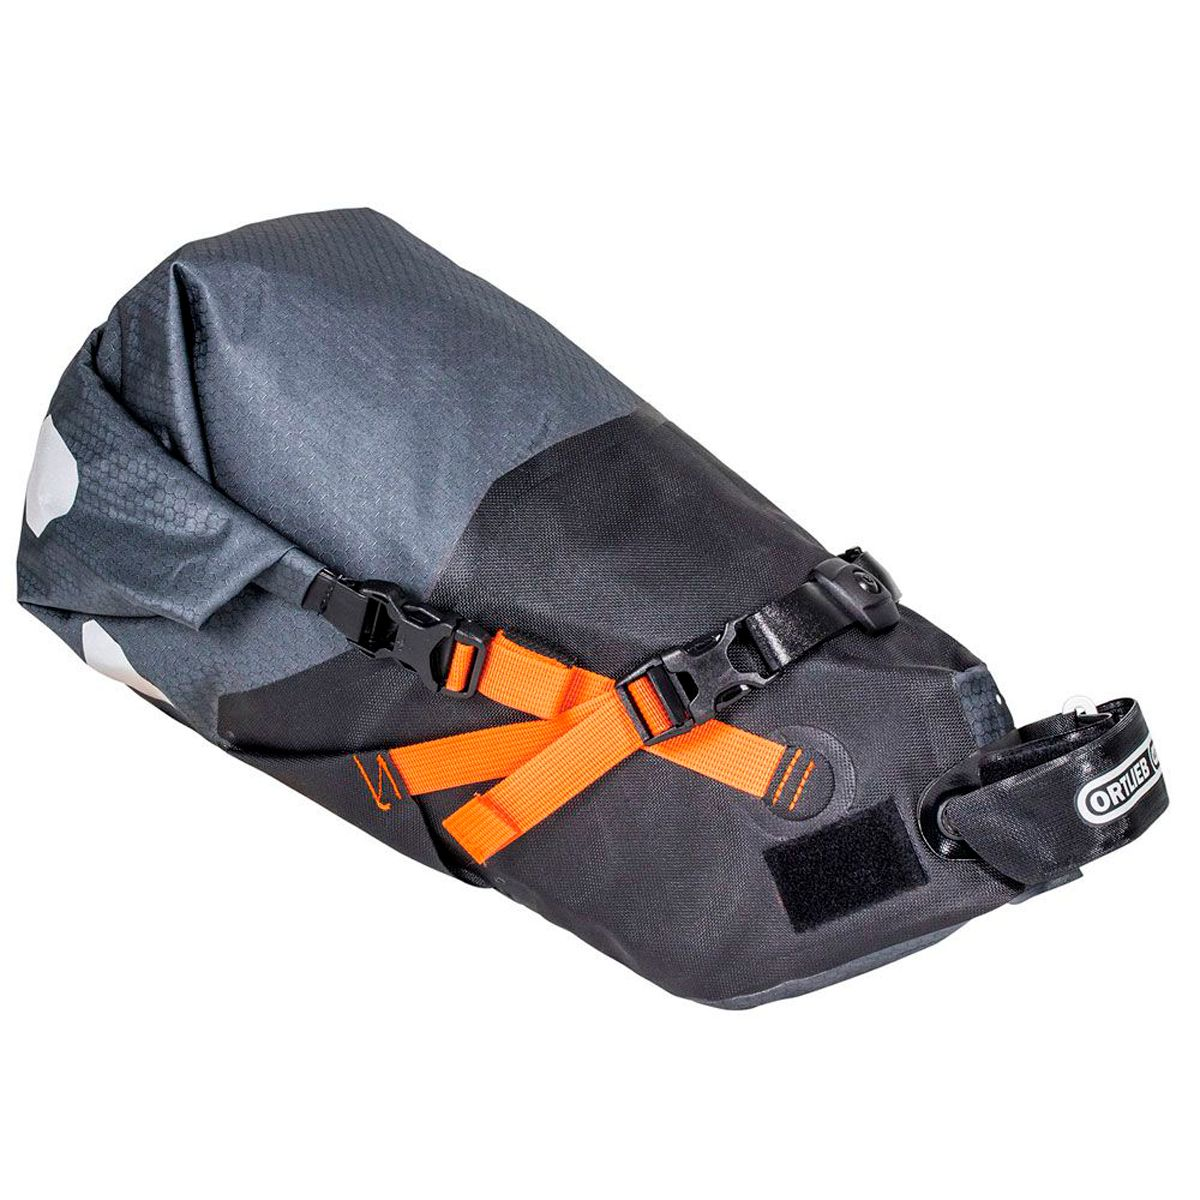 BIKE PACKING SEAT-PACK M